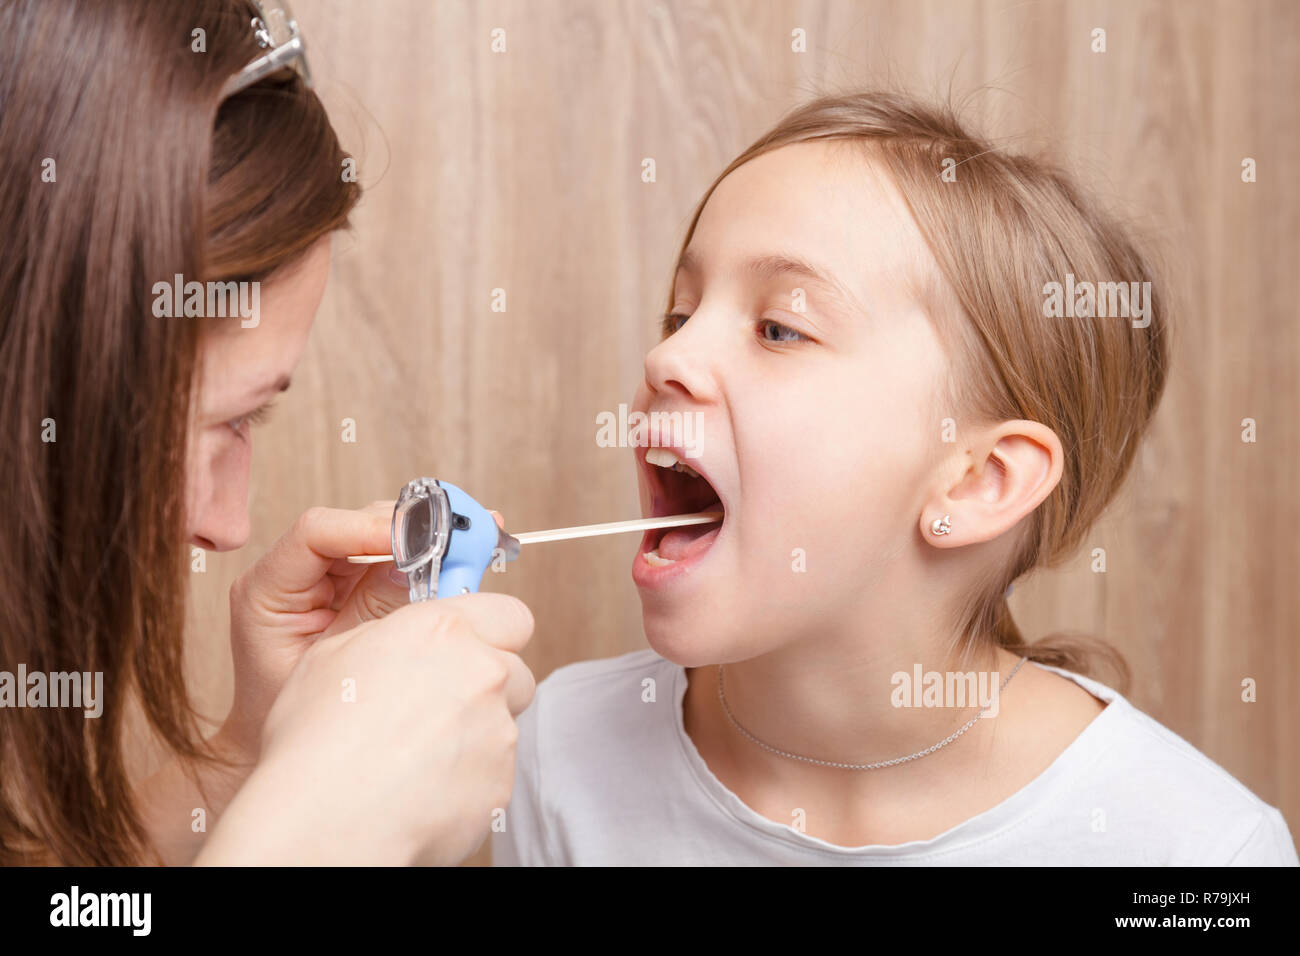 Female pediatrician or health care practitioner examines elementary age girl's throat using wooden tongue depressor and torch. Child physical examinat - Stock Image